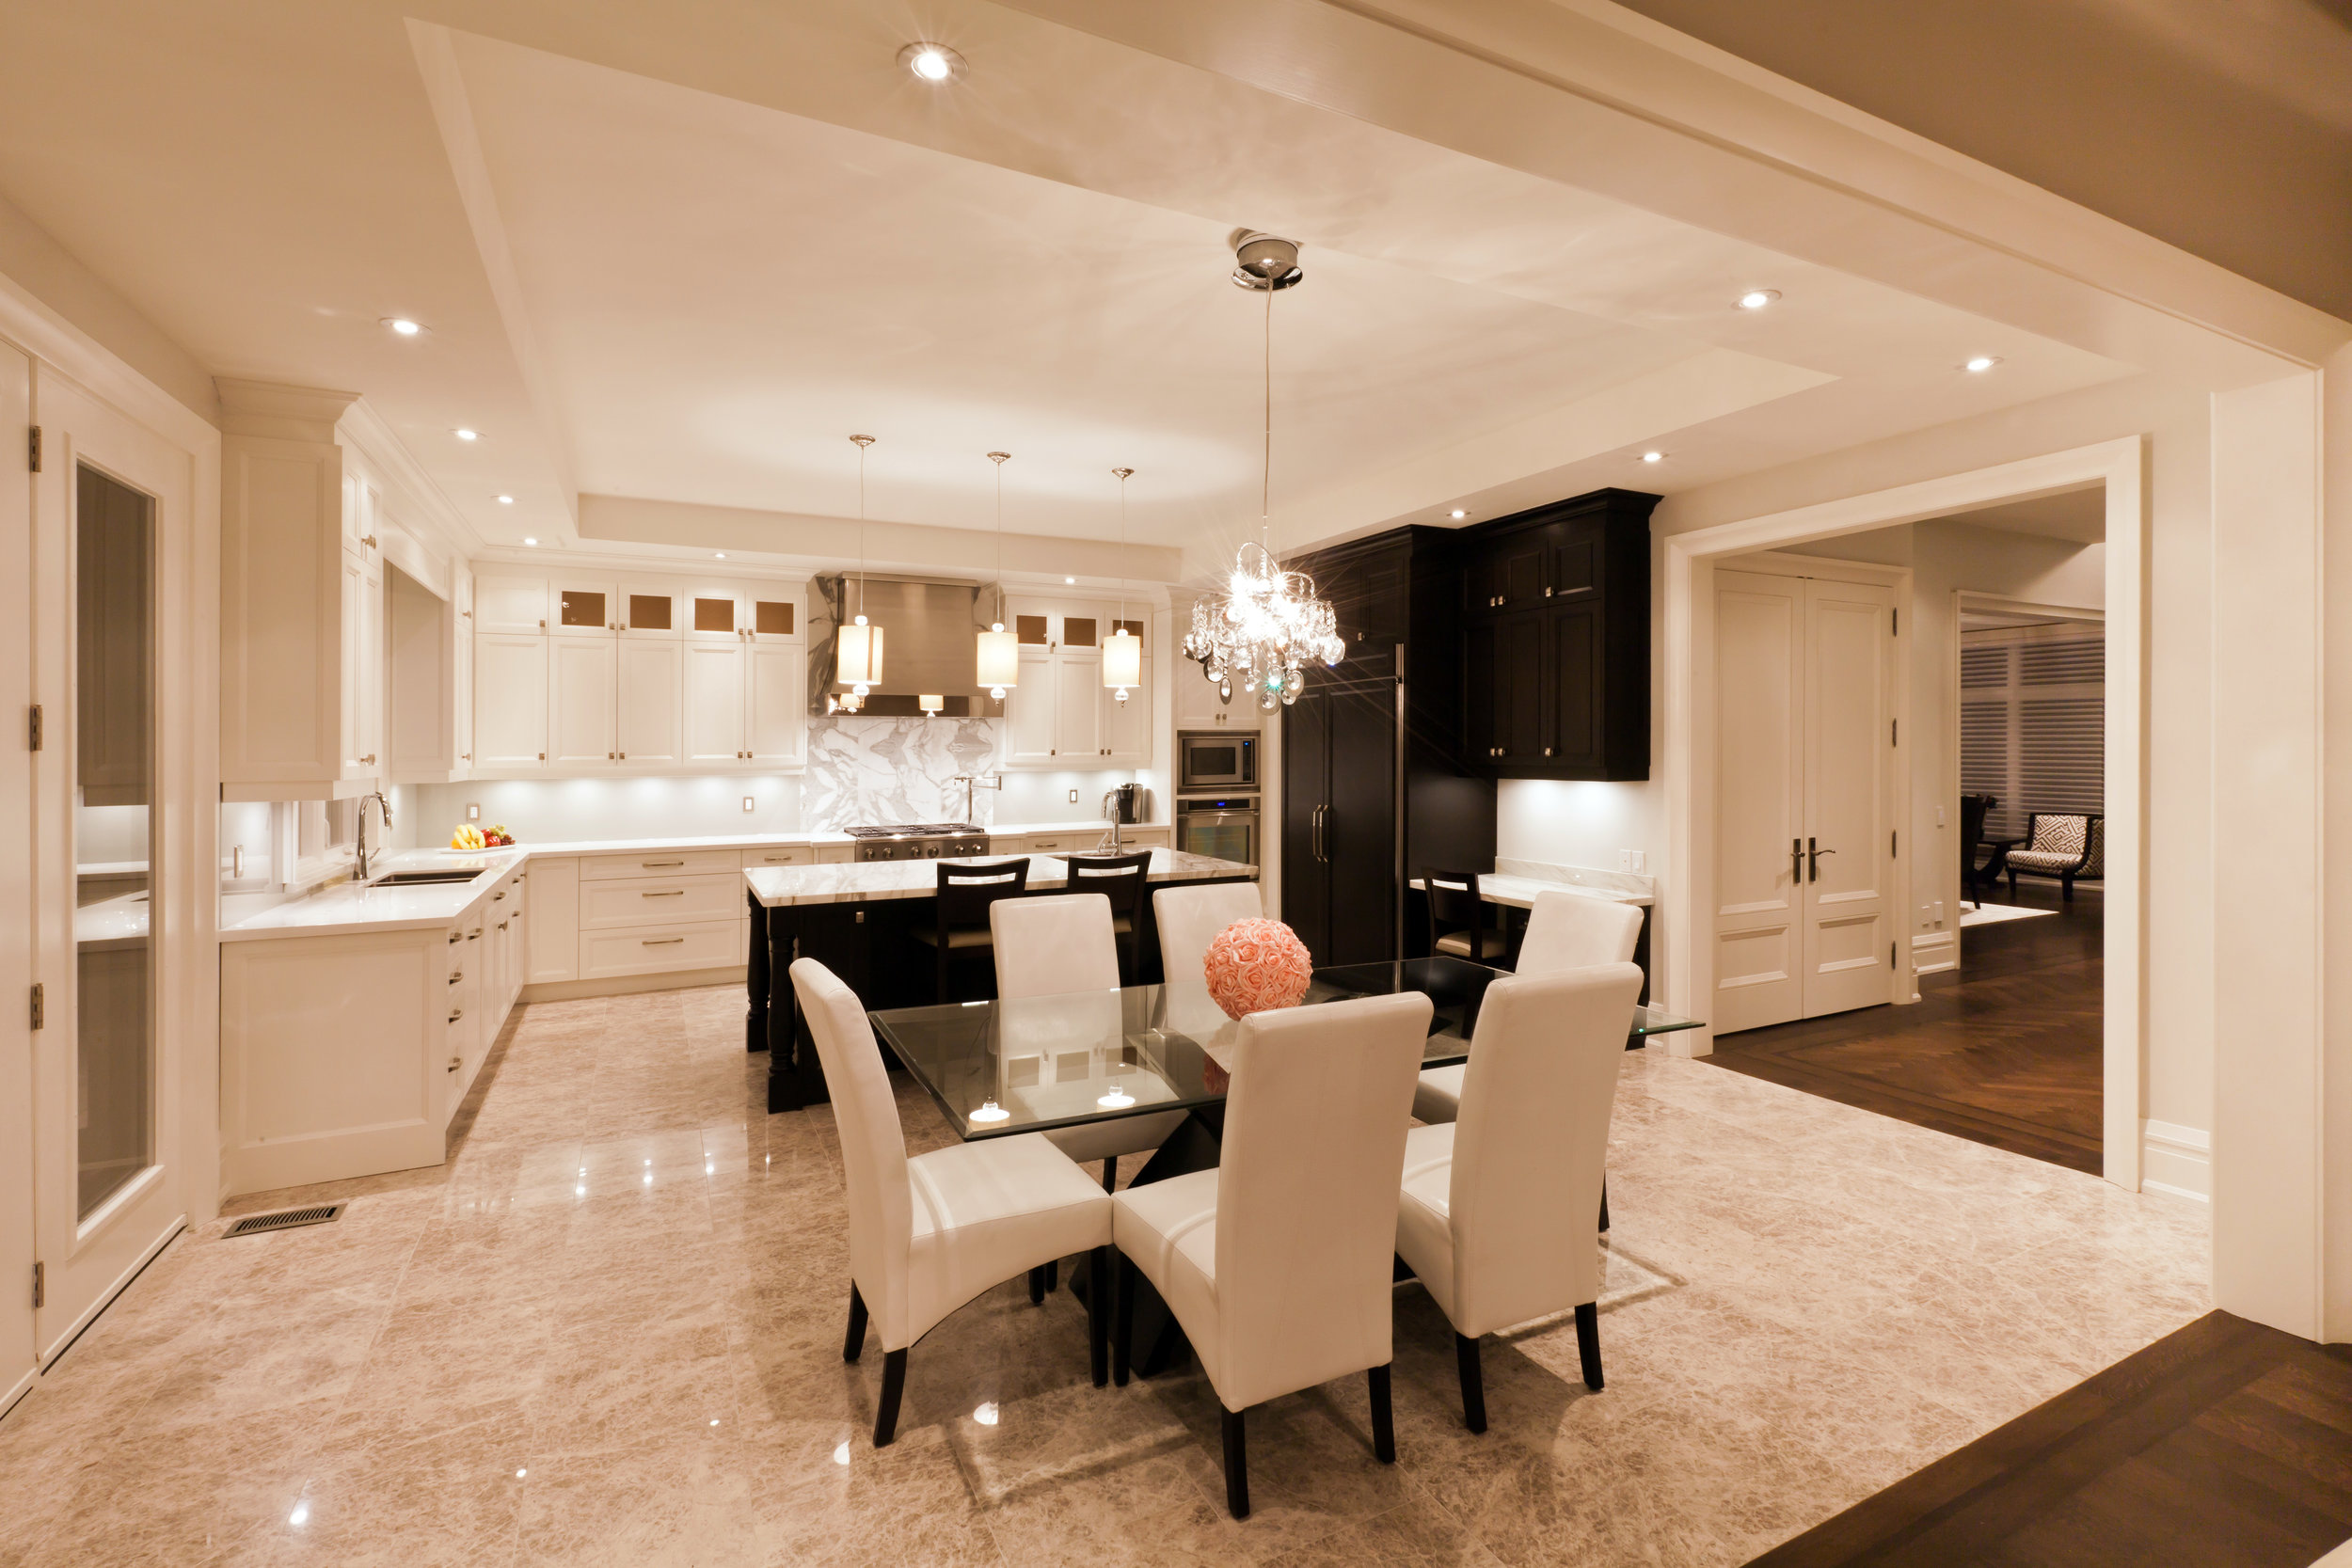 Kitchen Remodeling Contractor & Remodel